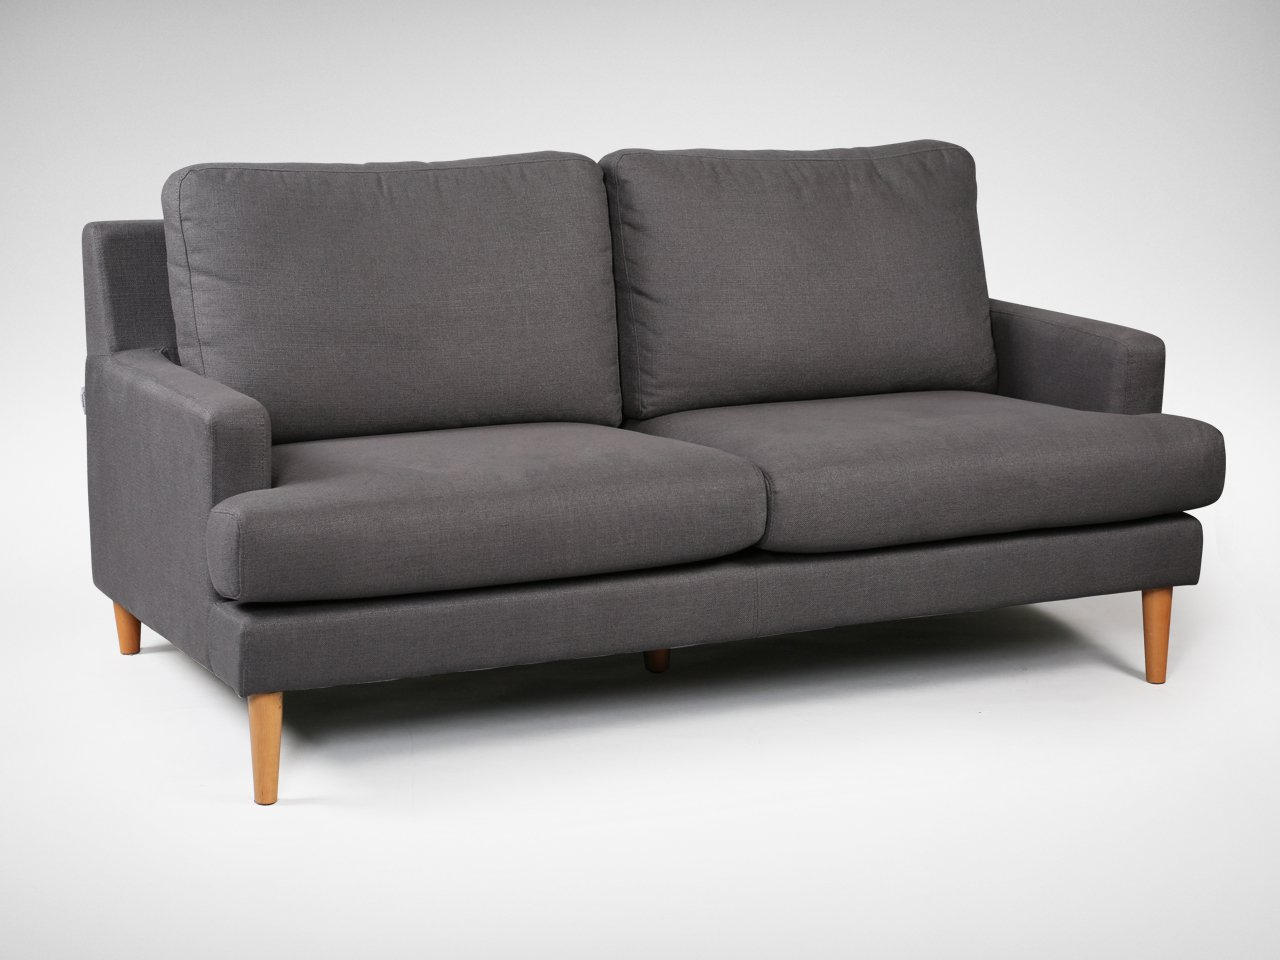 Leila 3–Seater Sofa | Comfort Design – The Chair & Table People Inside Landry Sofa Chairs (Image 16 of 20)